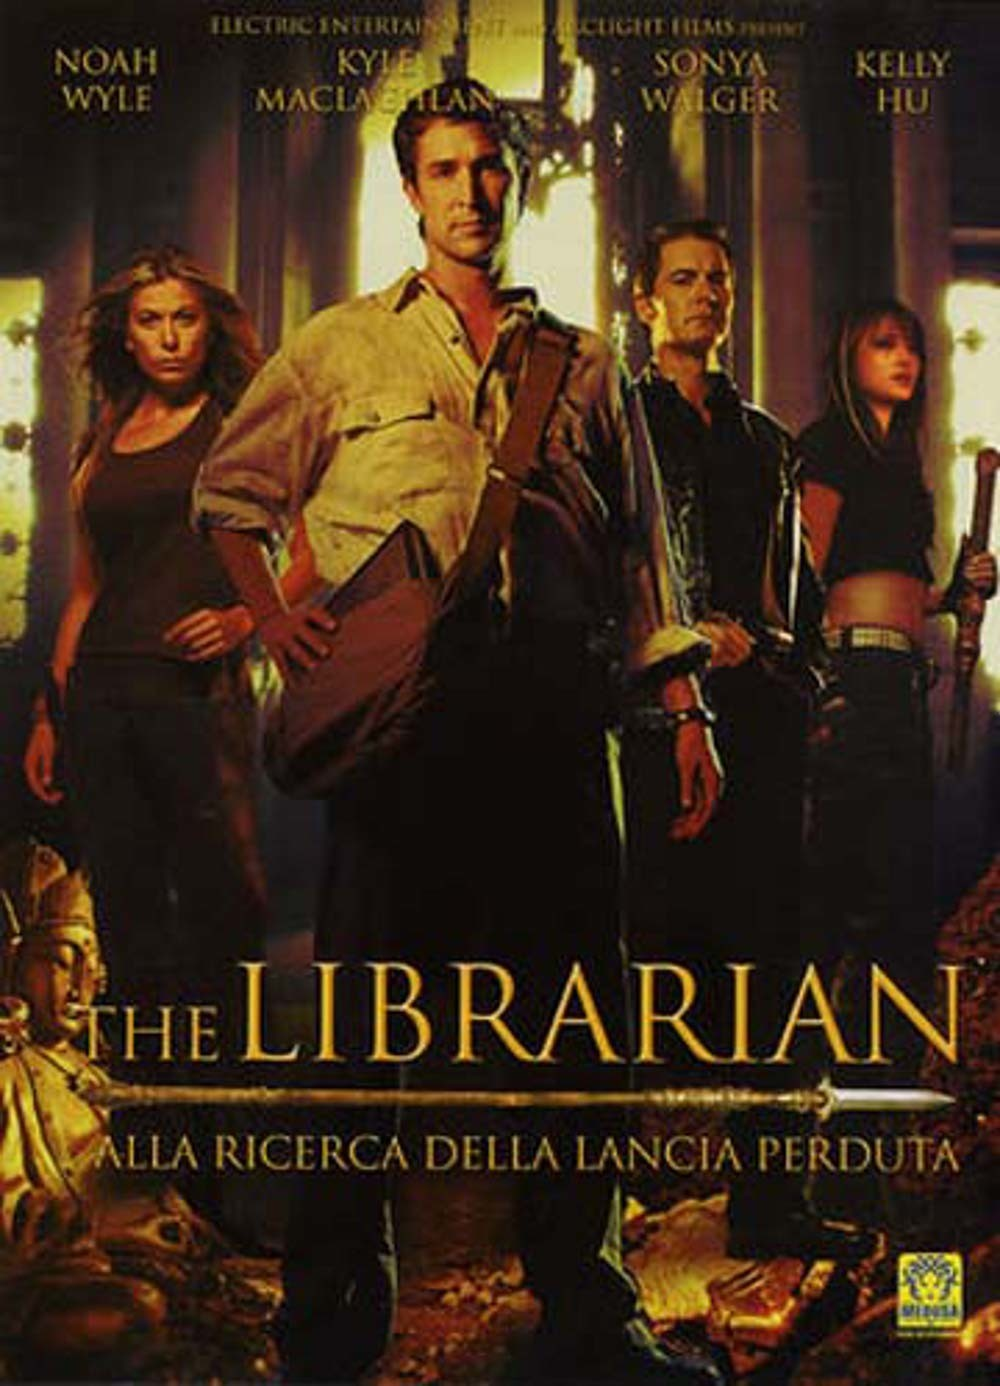 the librarian from the movie quotes quotesgram